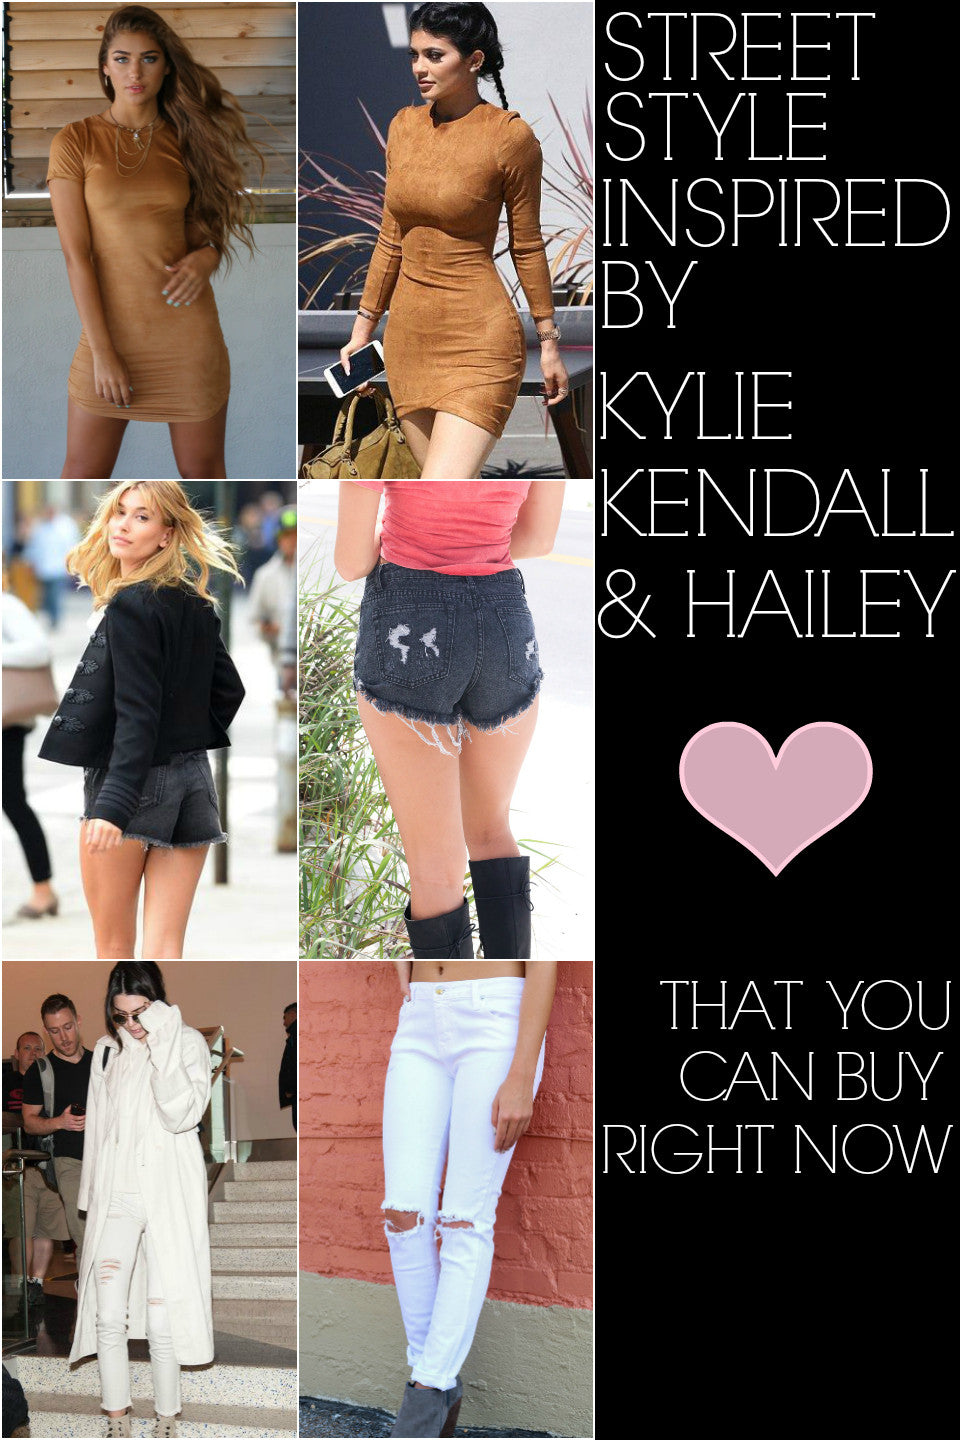 Street Style Inspired By Kylie, Kendall, & Hailey That You Can Buy Right Now!